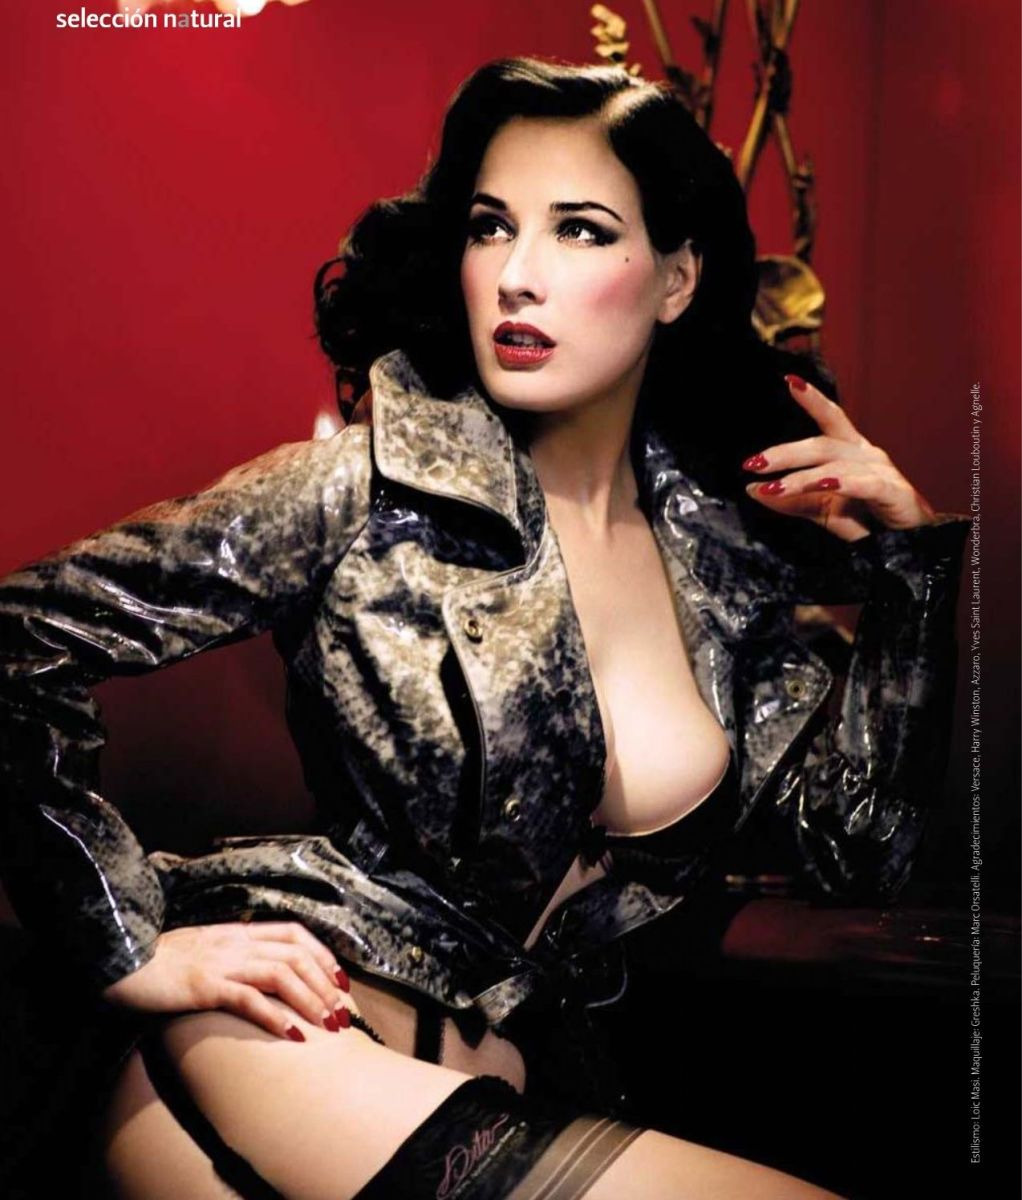 Dita Von Teese - Burlesque Queen and Ultimate Femme Fatale